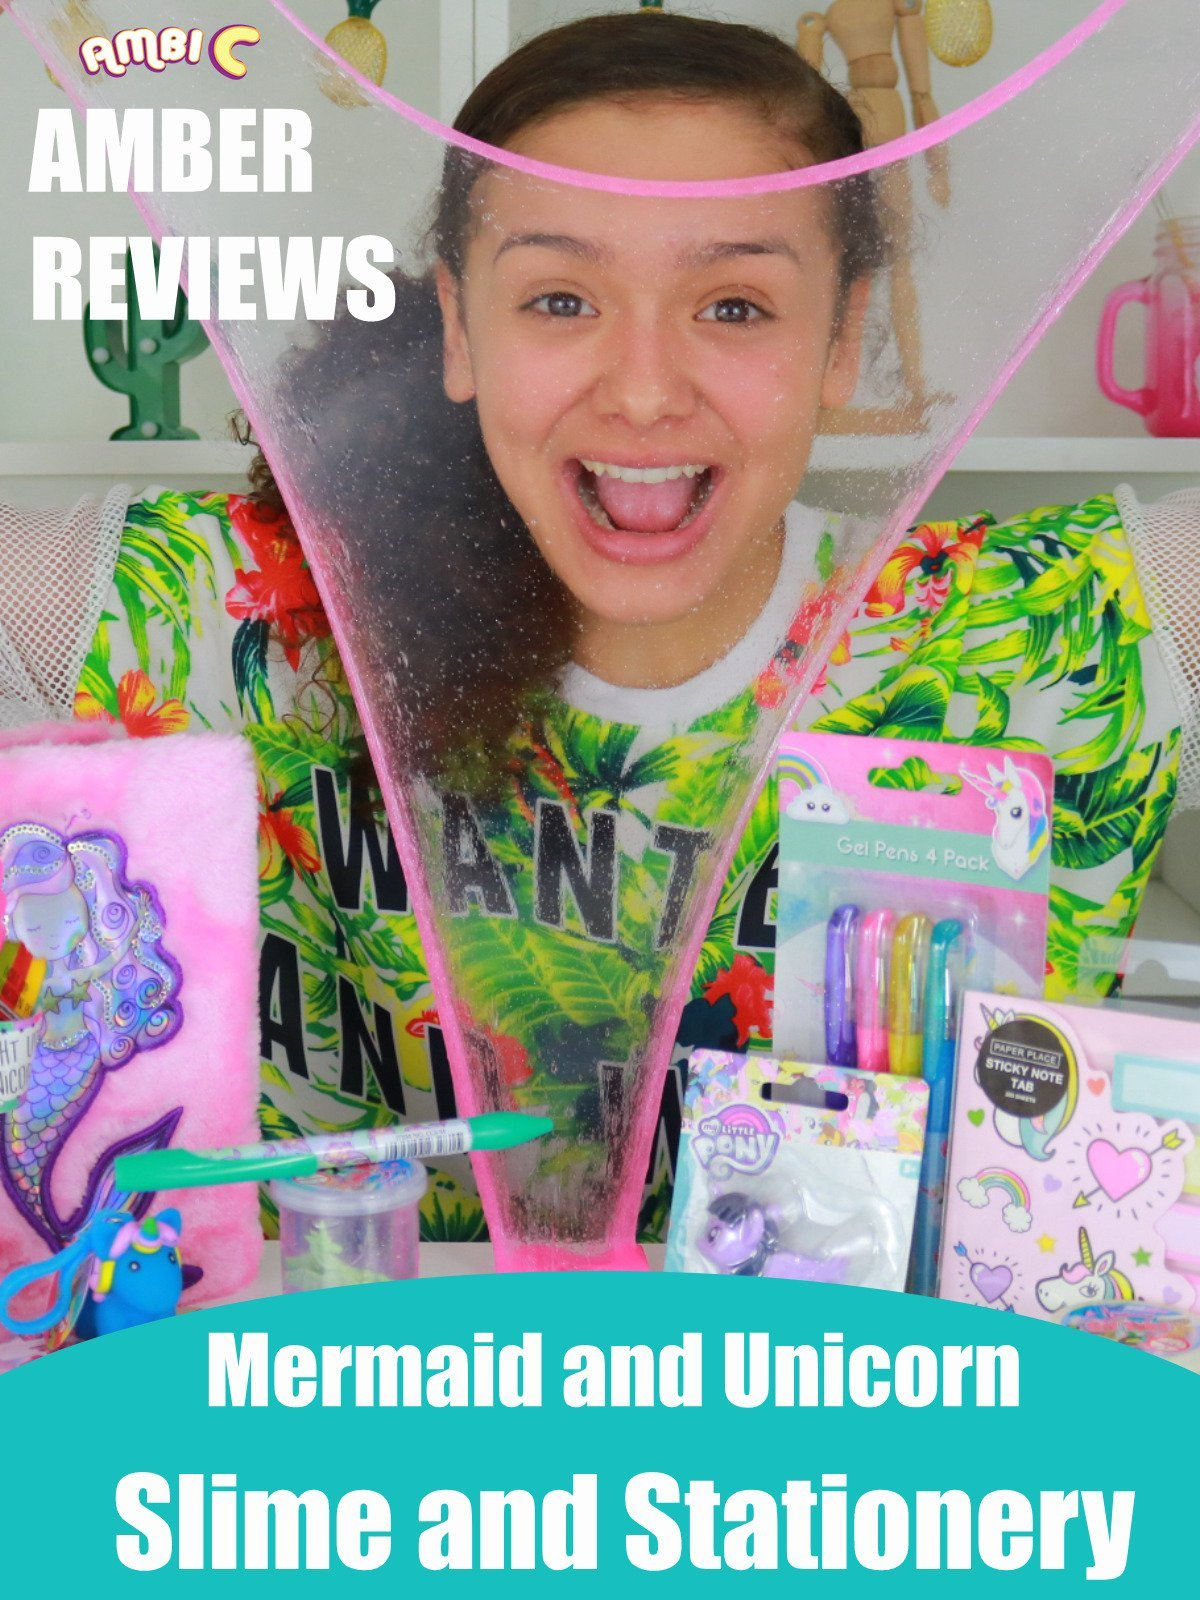 Amber Reviews Mermaid and Unicorn Slime and Stationery